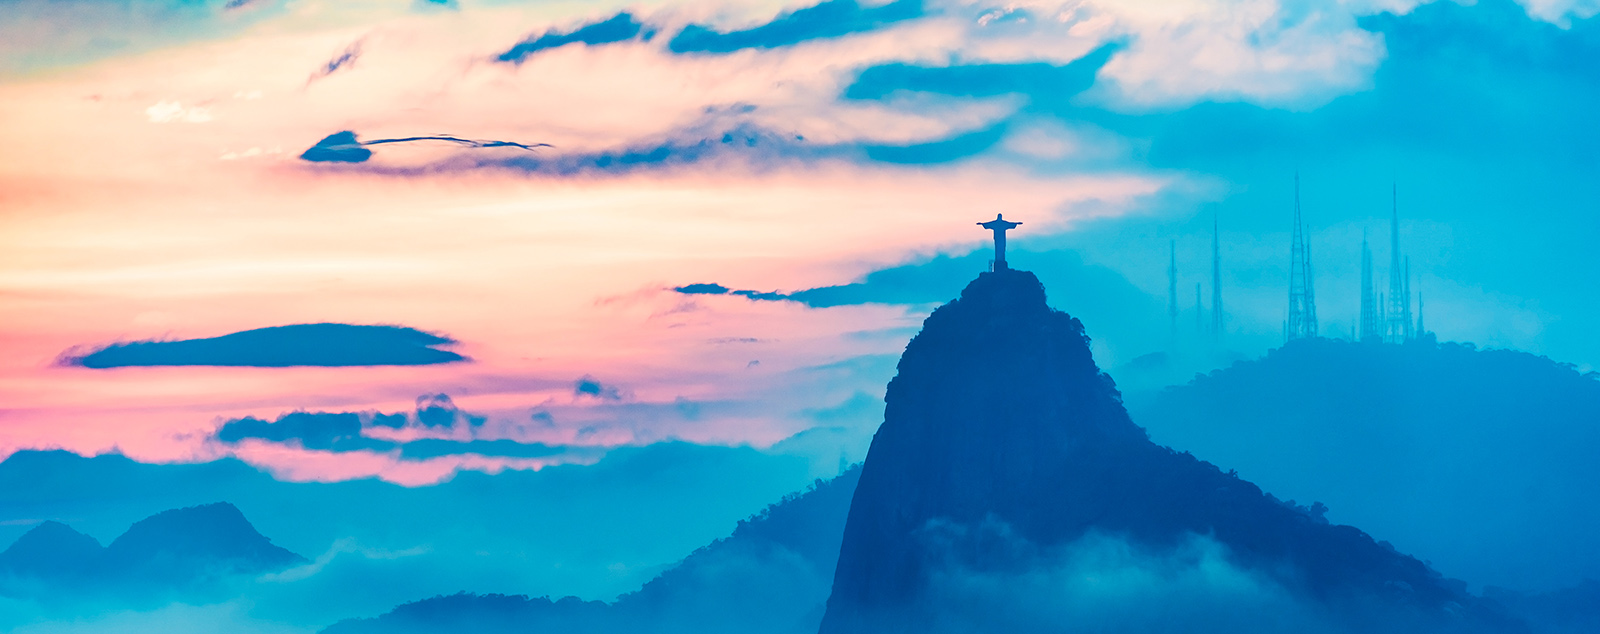 Christ the Redeemer statue stands tall on its mountain top over the city, with a misty blue sky